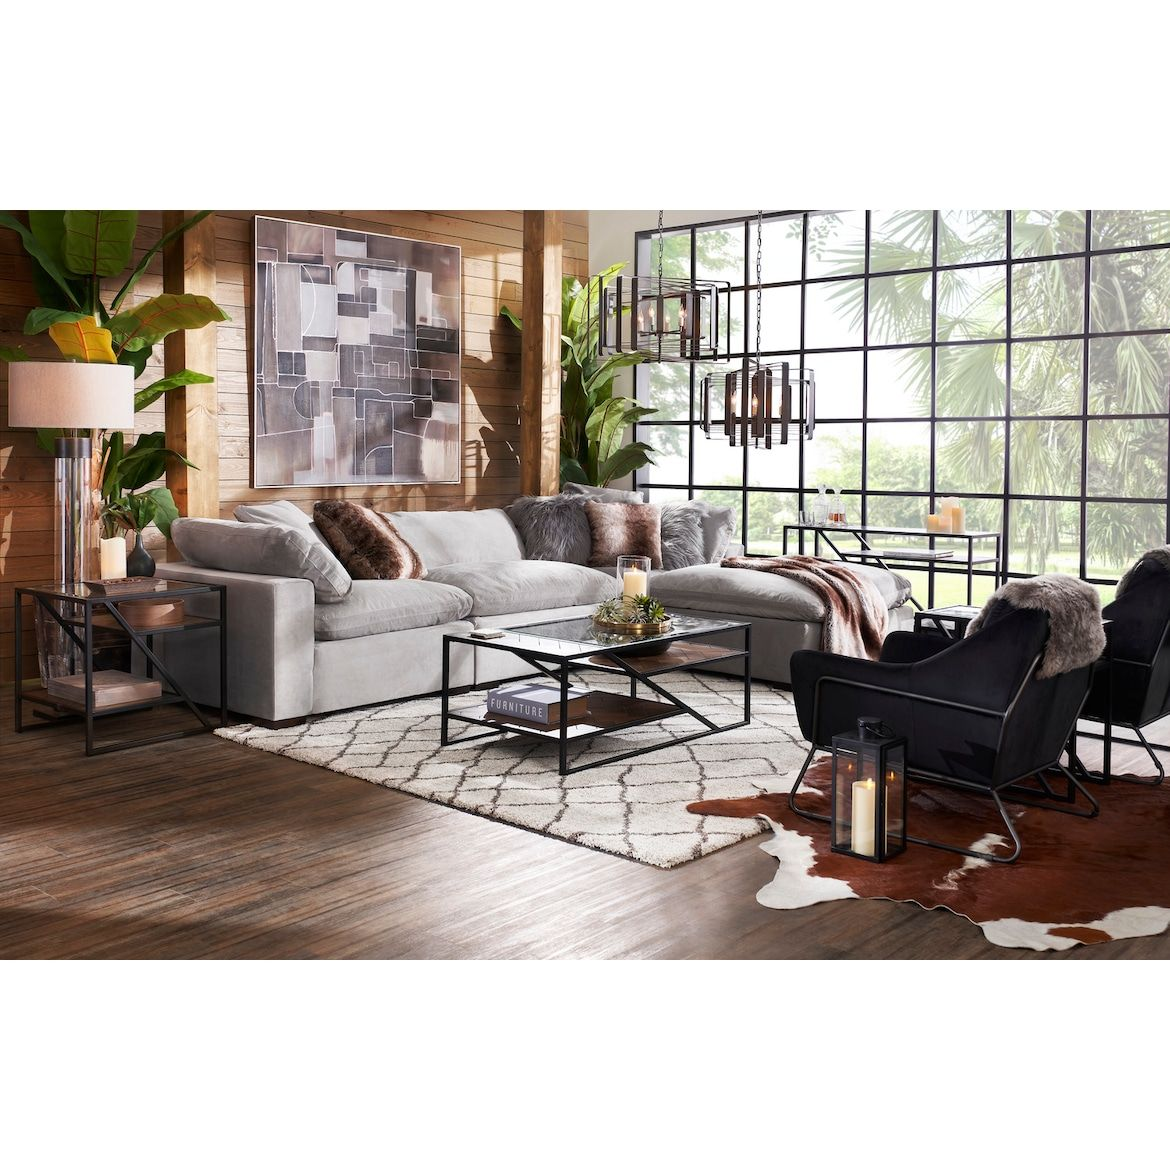 Plush 3 Piece Sofa And Ottoman City Living Room Furniture Value City Furniture